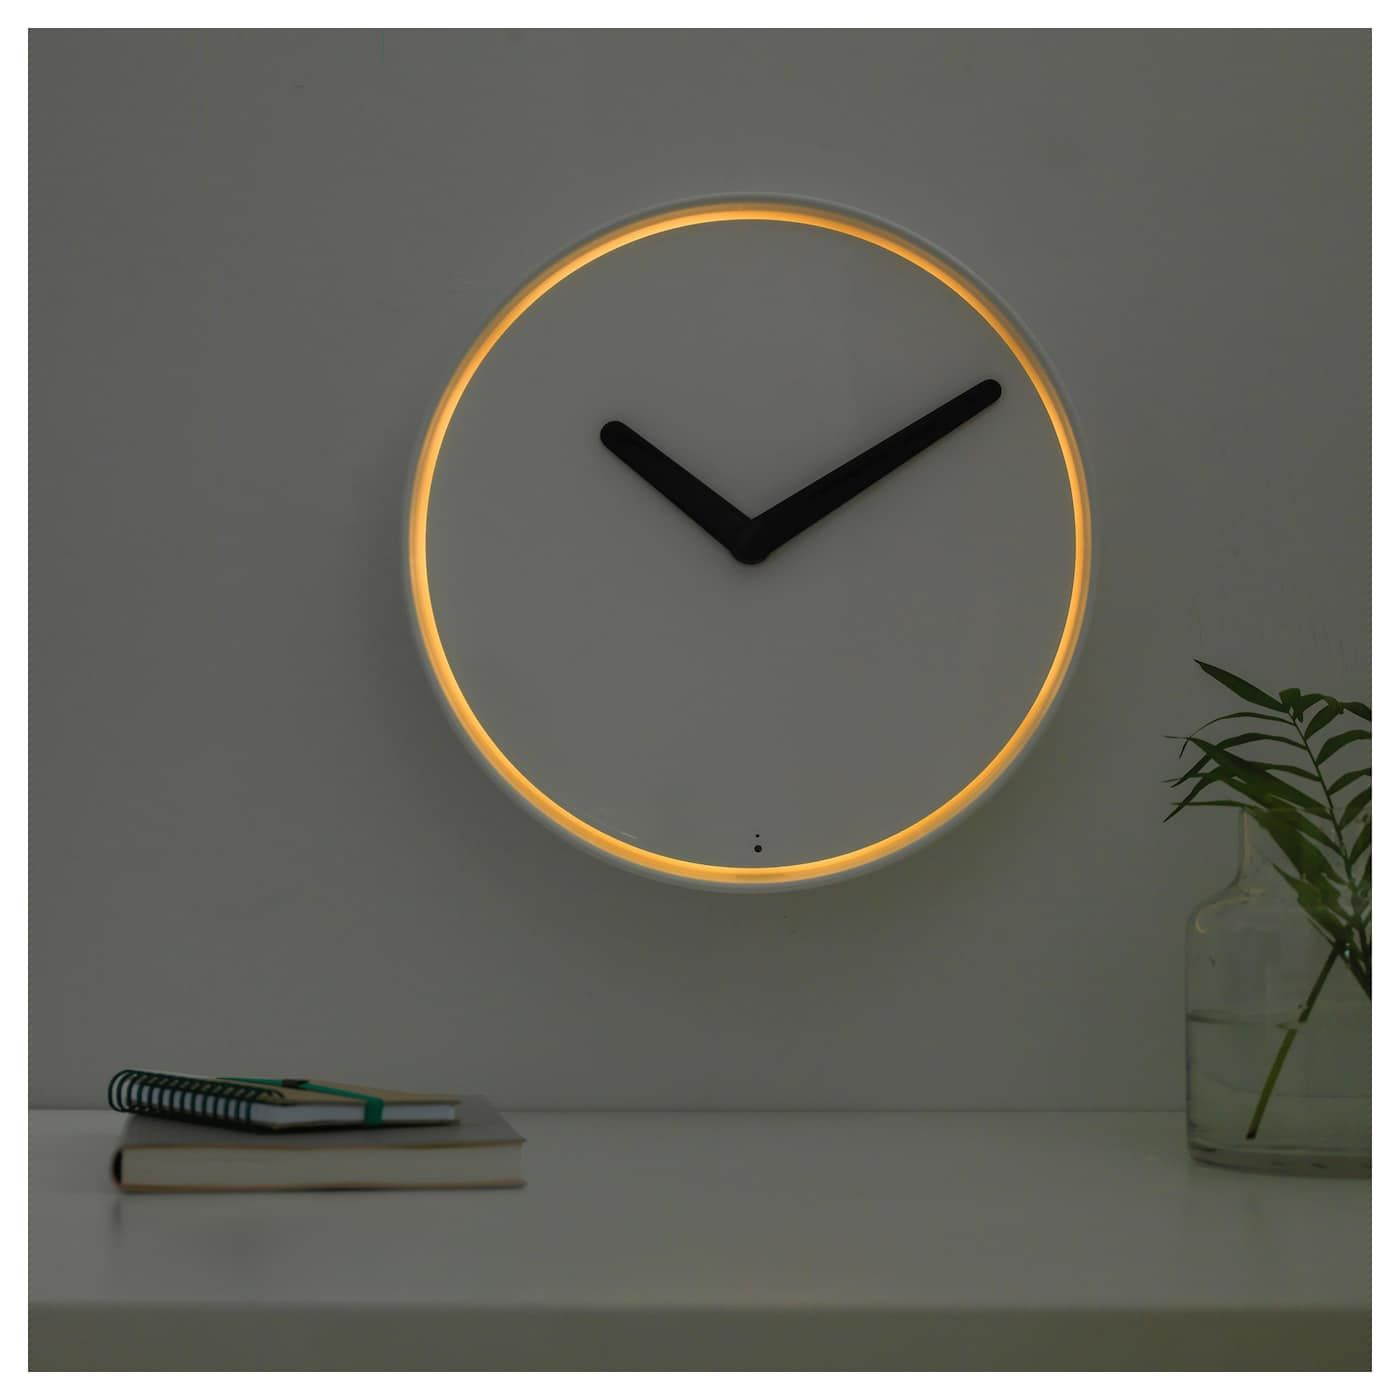 Ikea Us Furniture And Home Furnishings Wall Clock Design Wall Clock Light Wall Clock